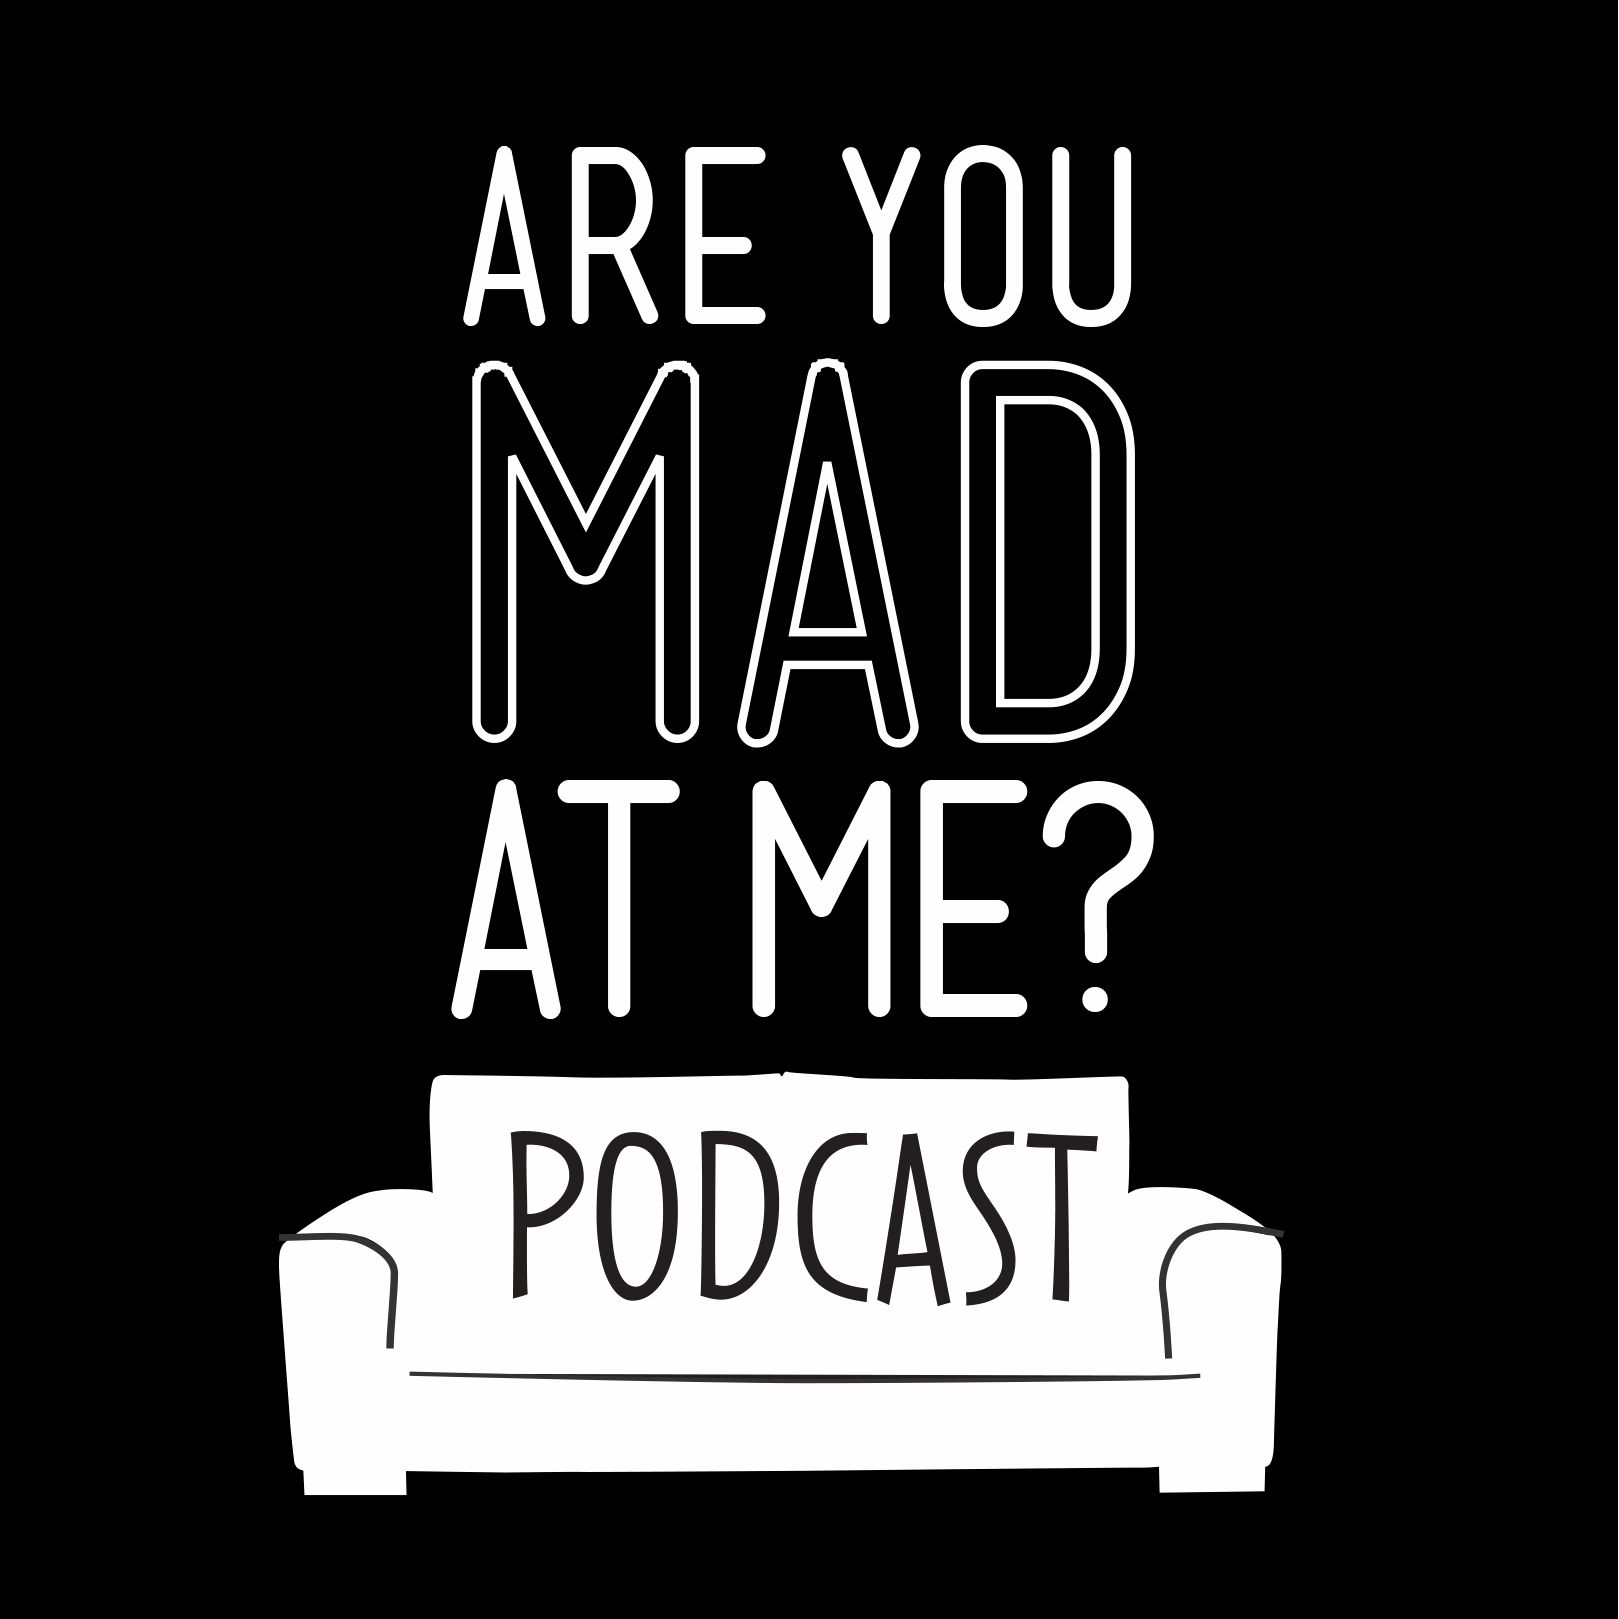 AreYouMadAtMe?Podcast